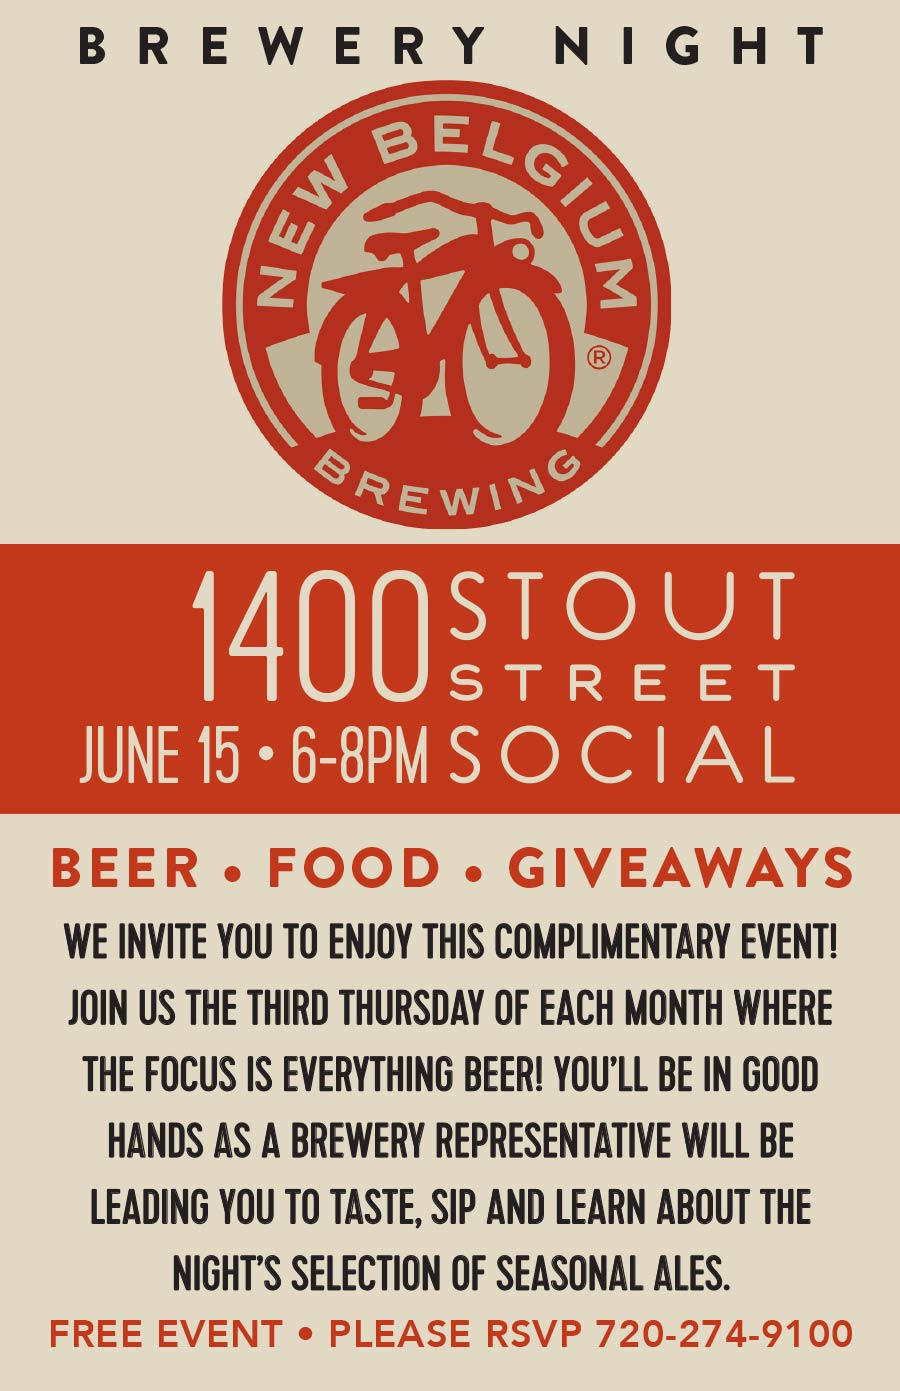 Stout Street Social Brewery Night with New Belgium Brewing